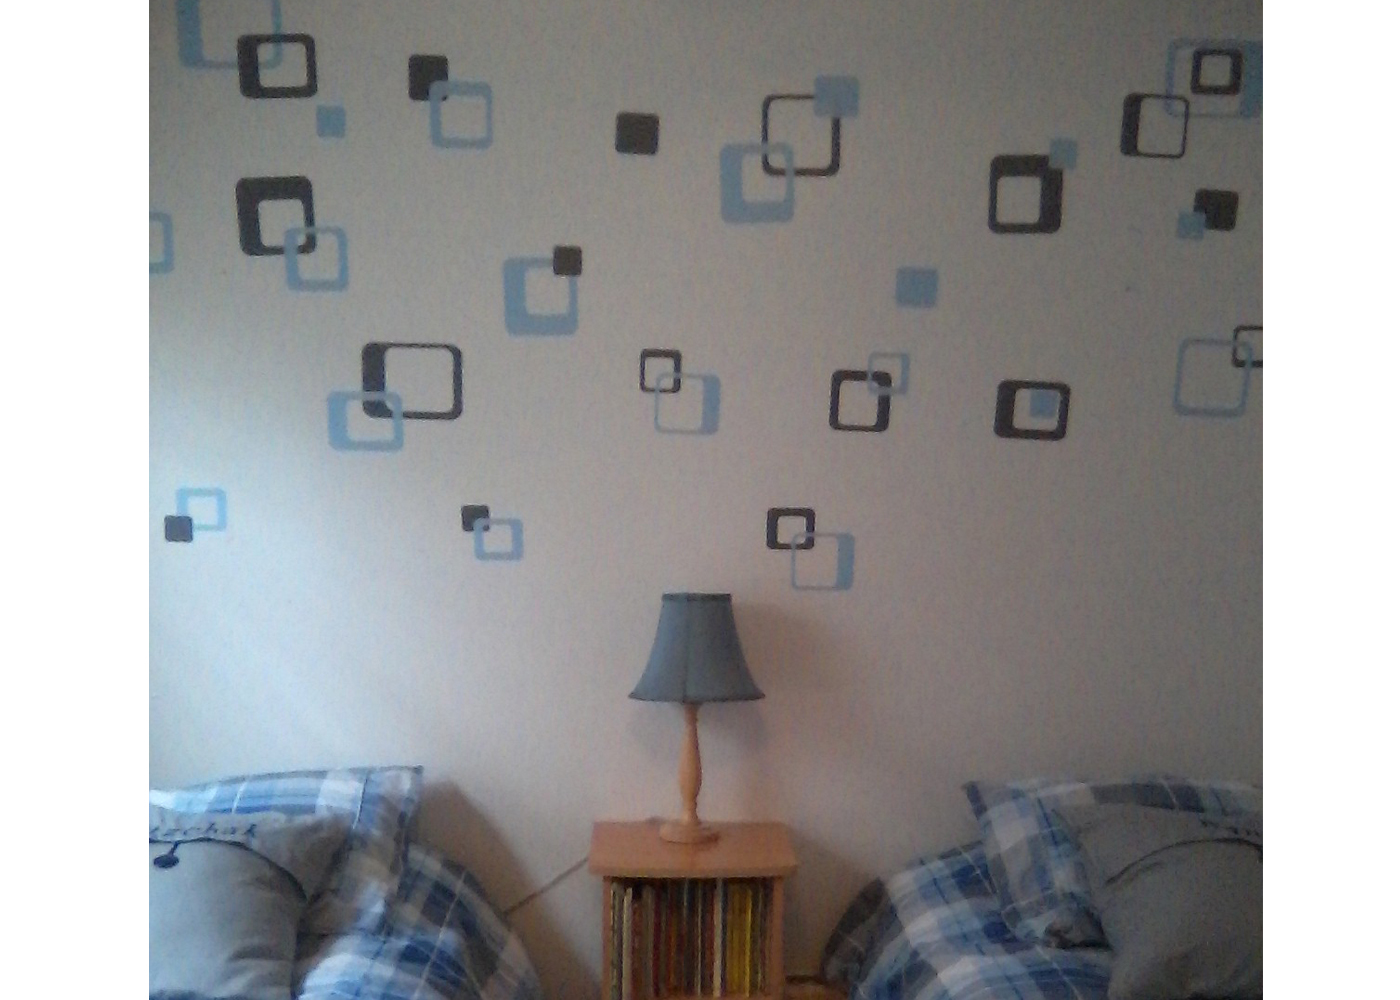 funky-rsquares-vinyl-wall-decals-in-boys-room.jpg